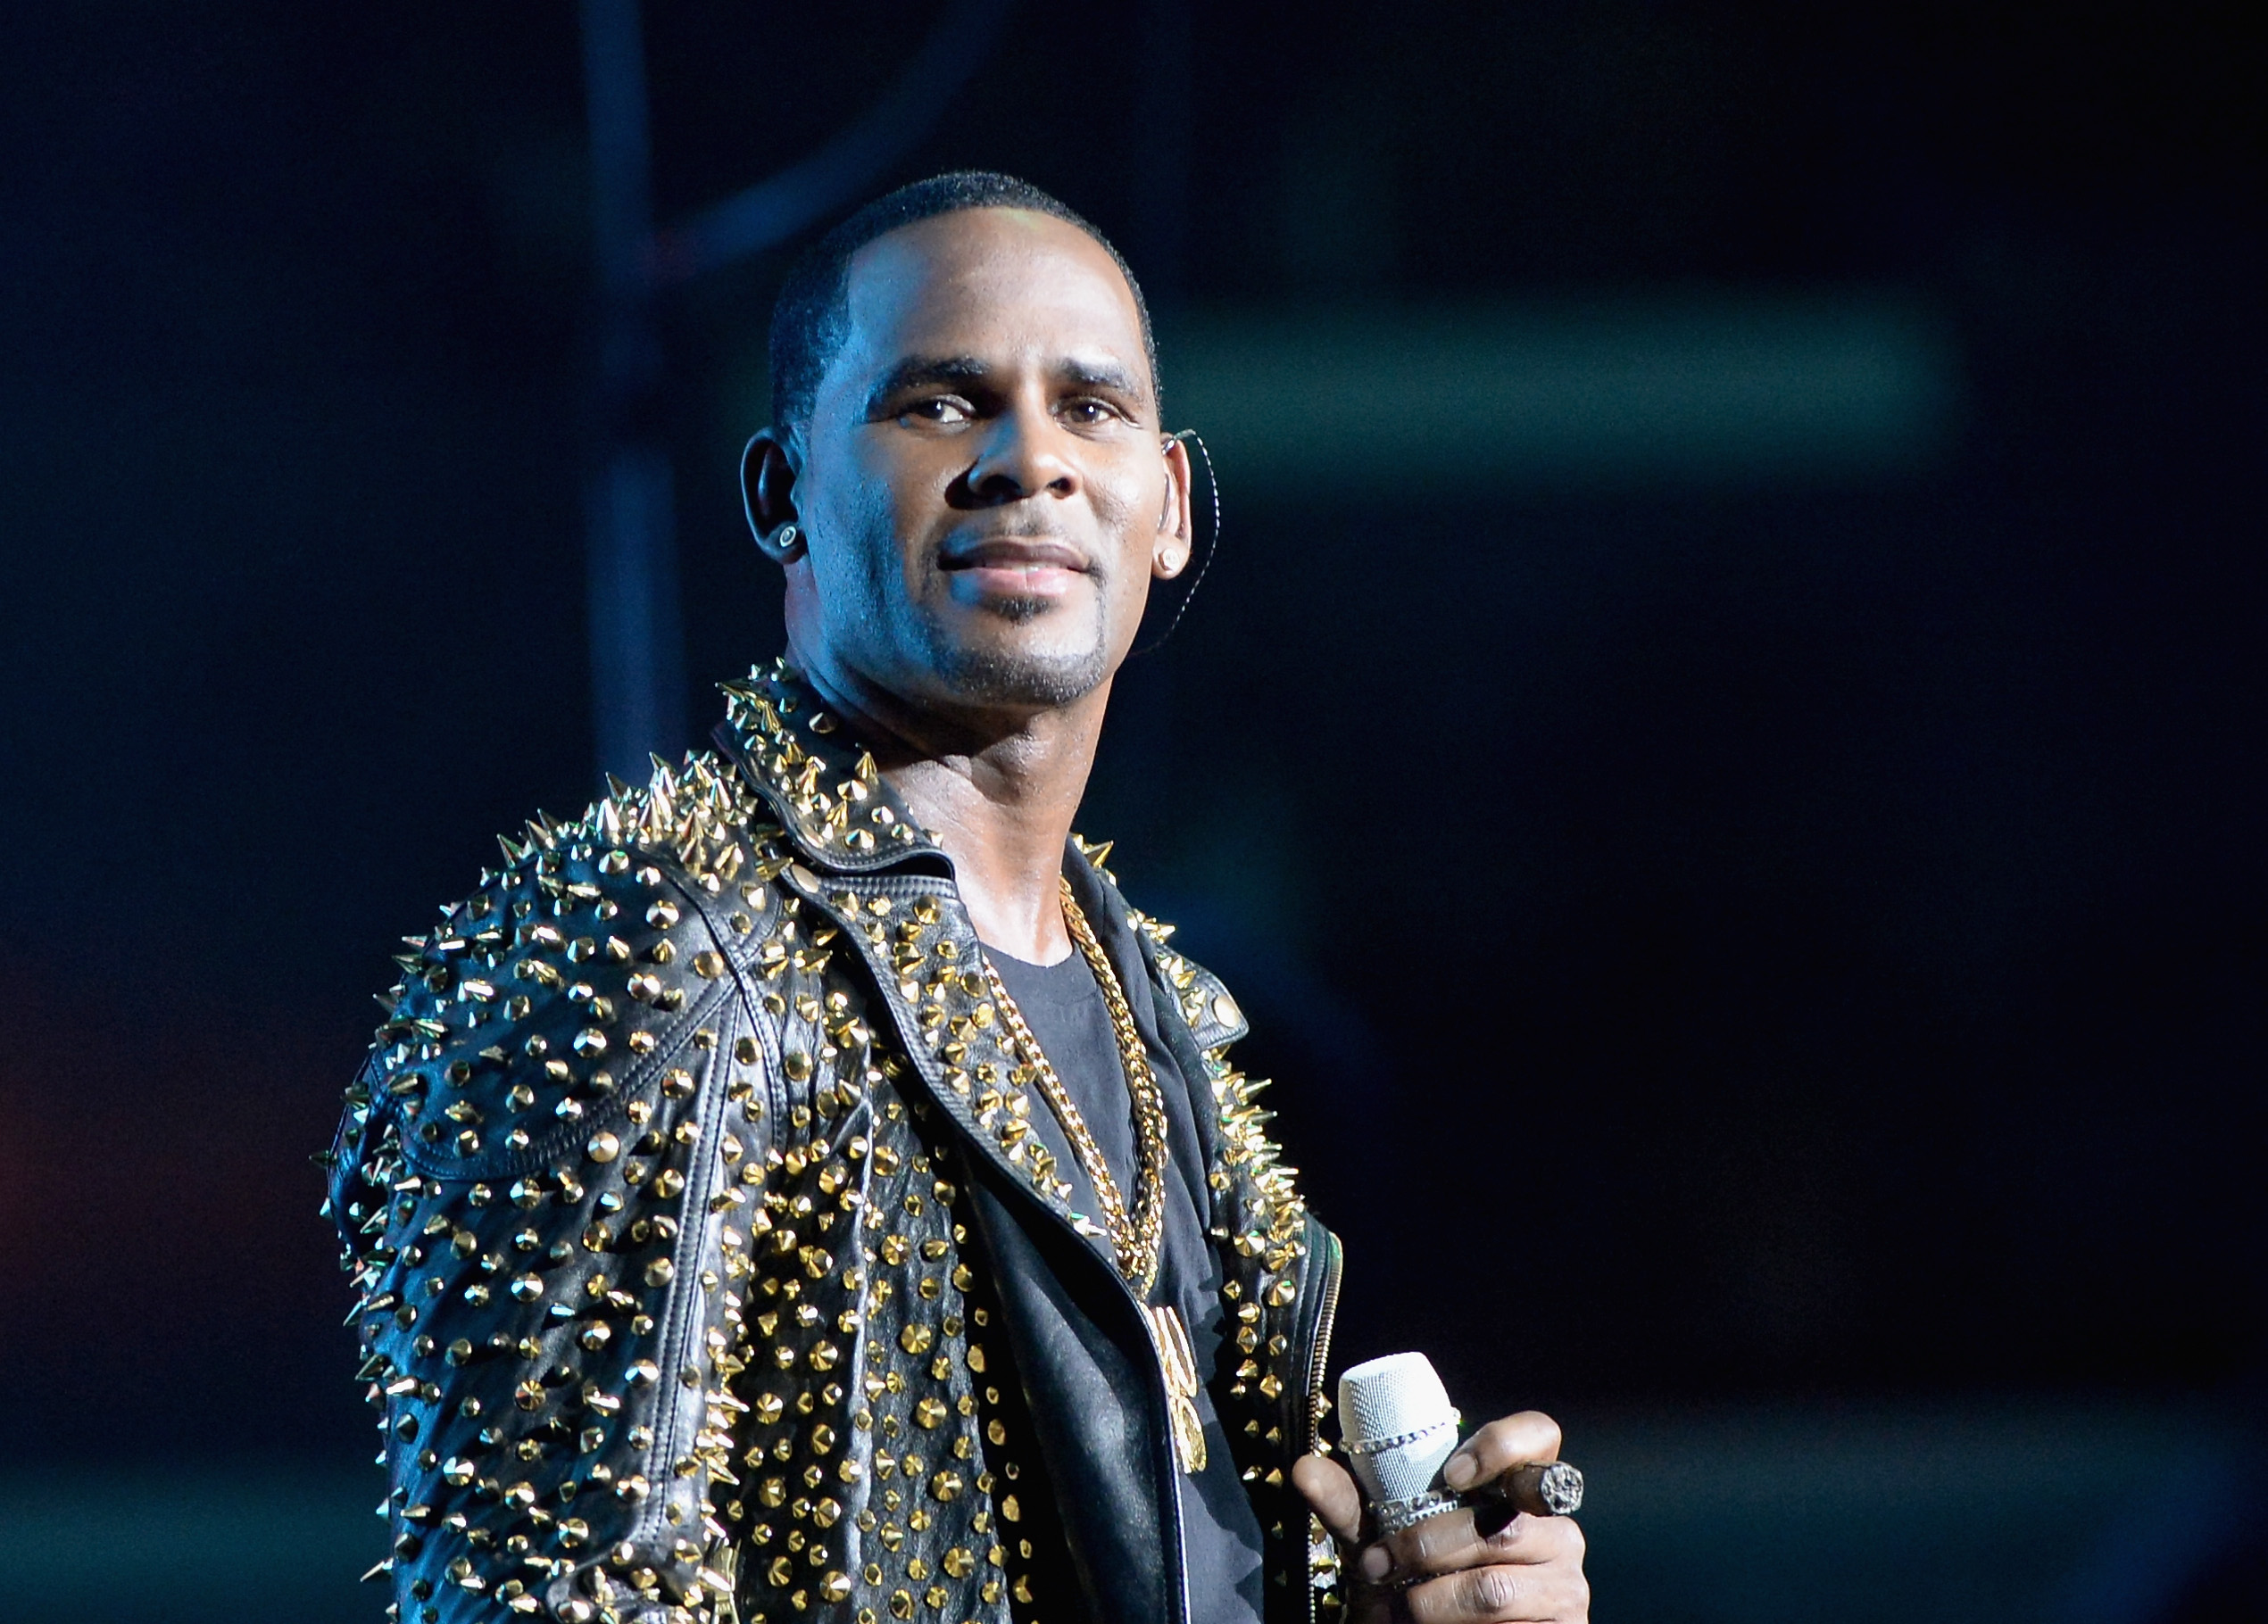 R. Kelly Trial: Prosecution Rests Sex Trafficking Case After Weeks Of Shocking Testimony